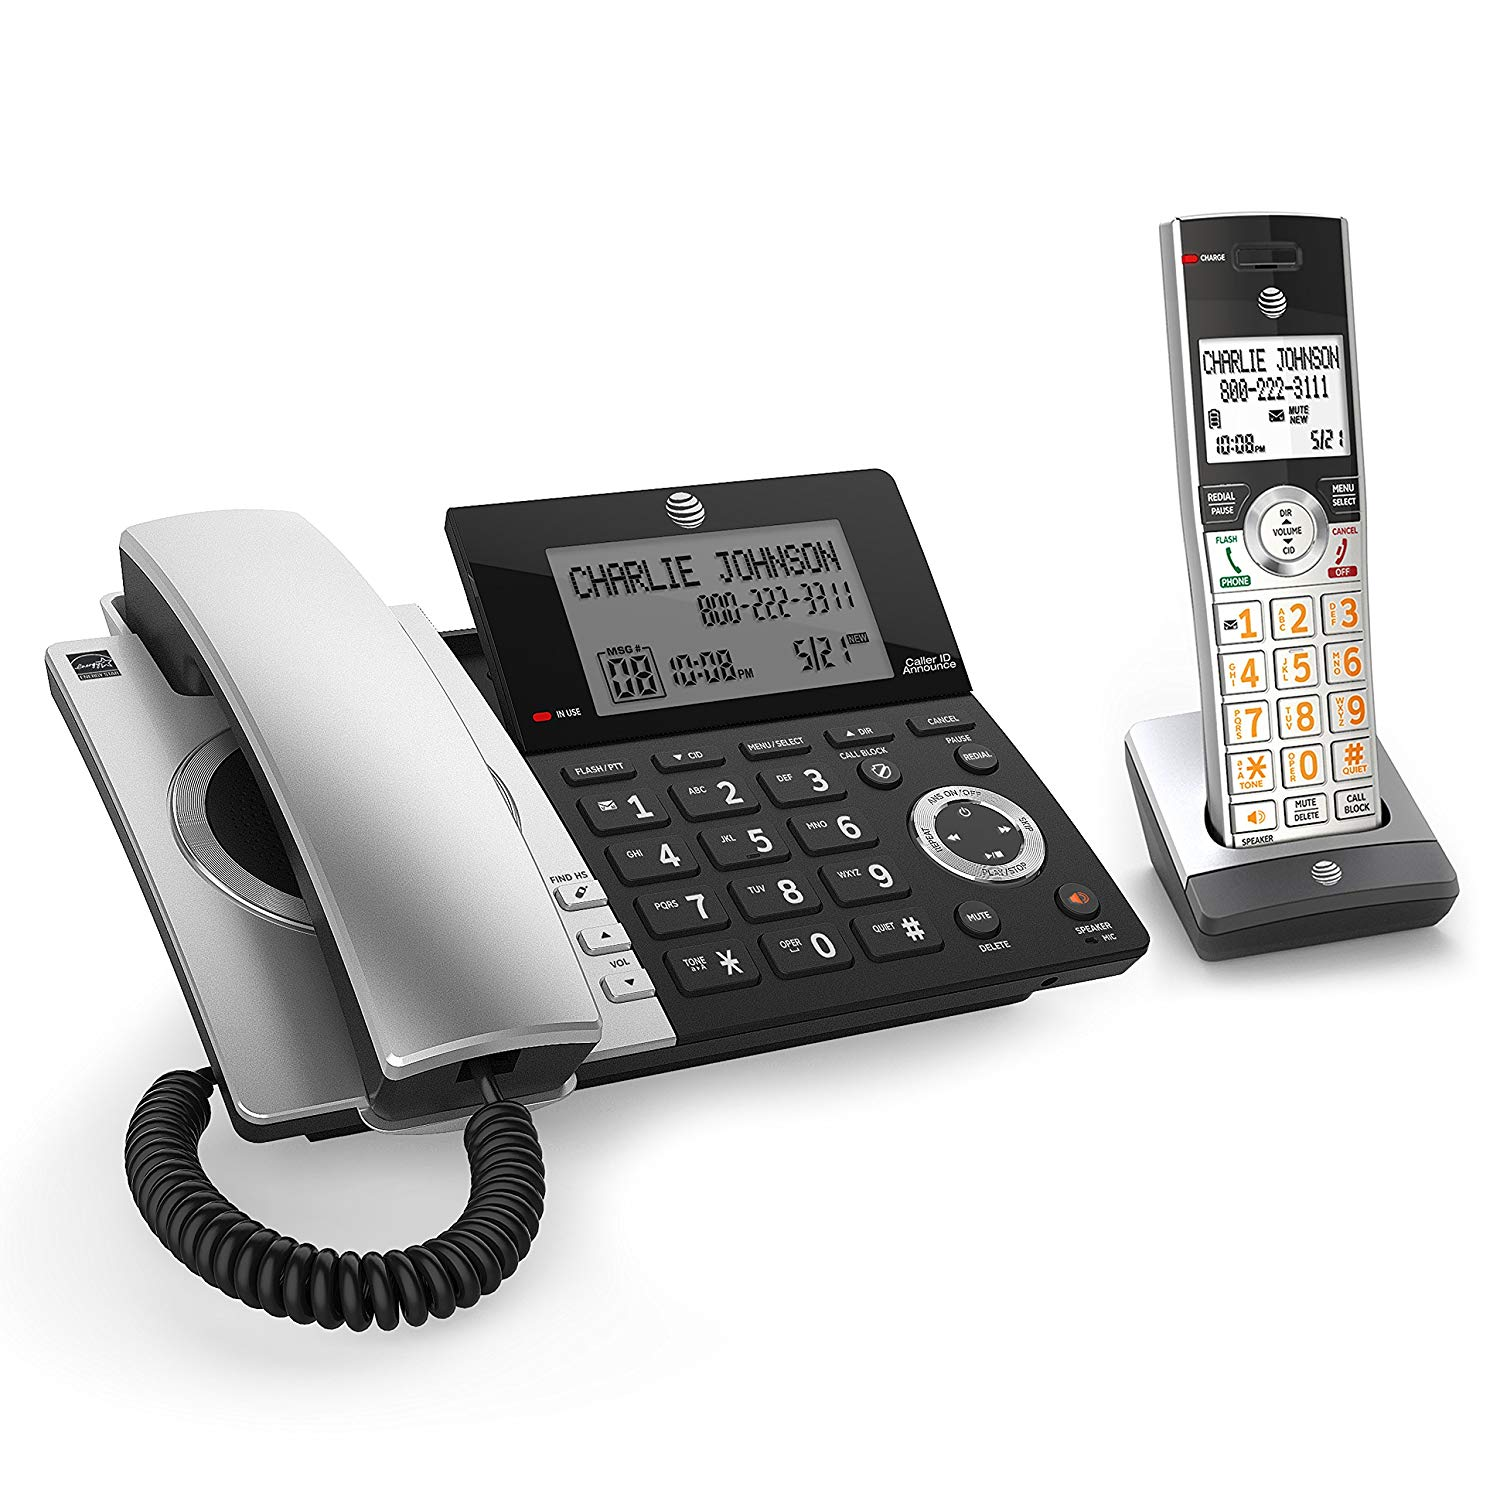 Top 10 Corded Phones With Answering Machine - Cardmunch